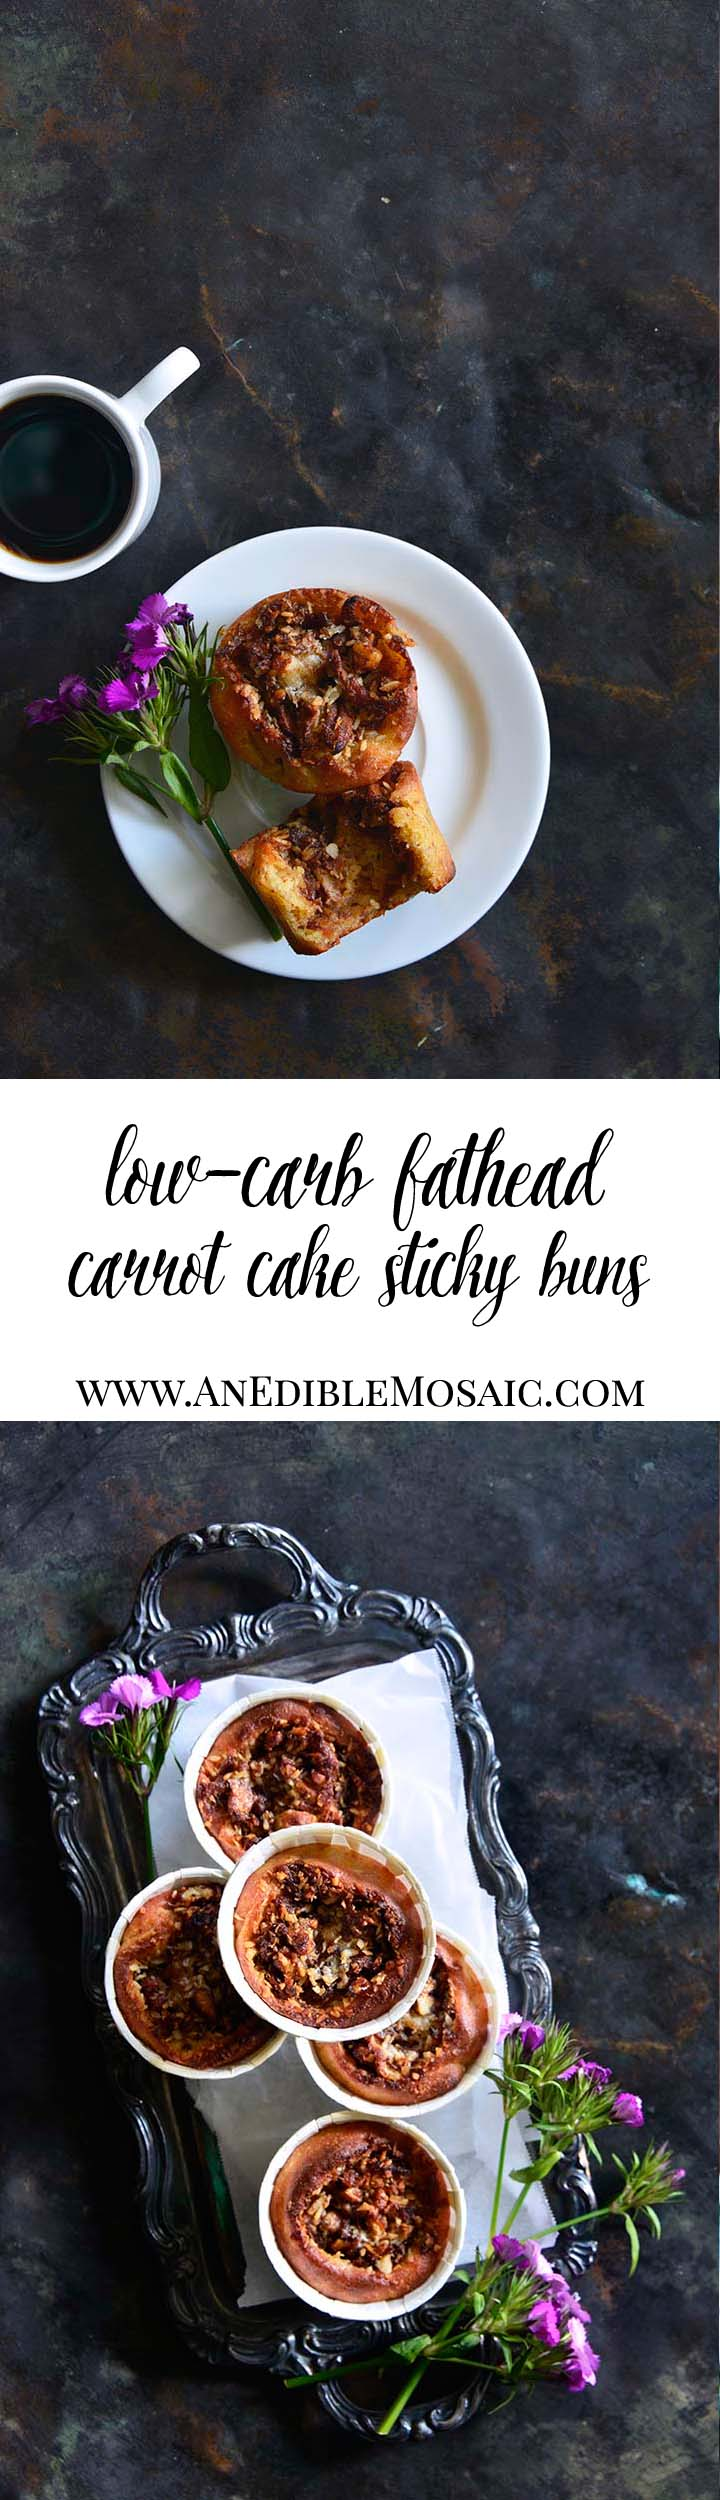 Low-Carb Fathead Carrot Cake Sticky Buns Long Pin